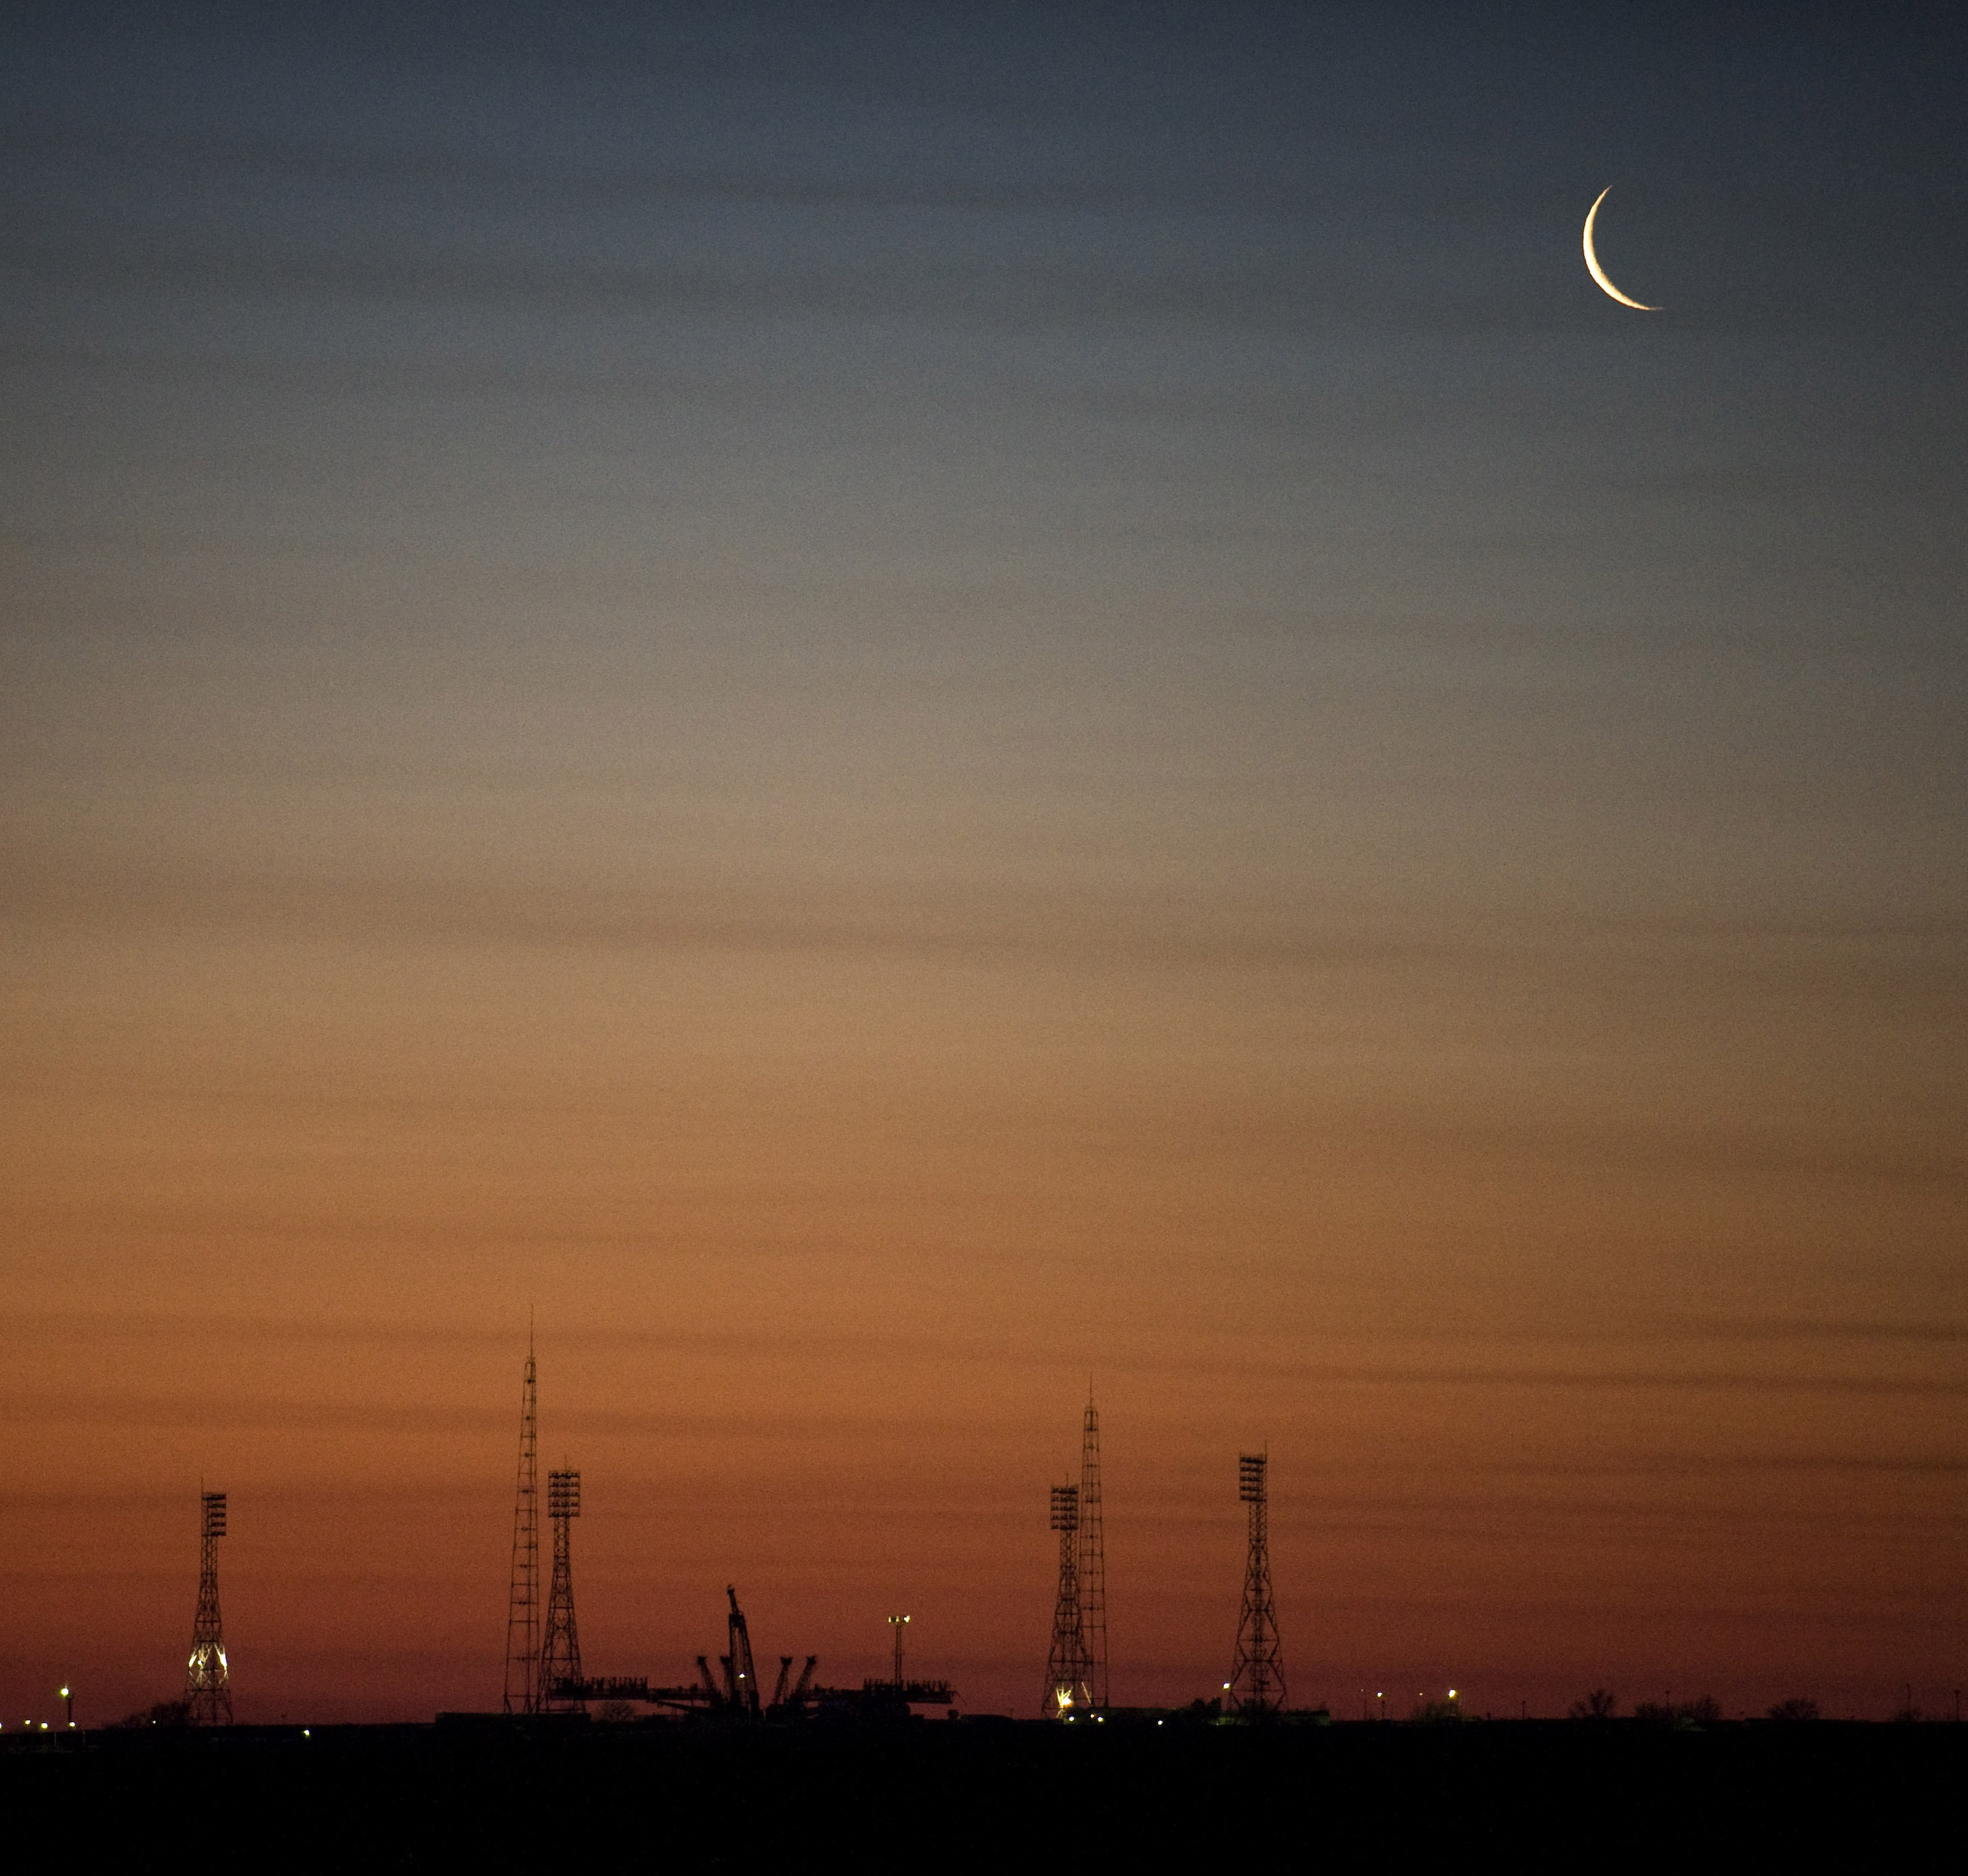 crescent predawn moon over communication towers